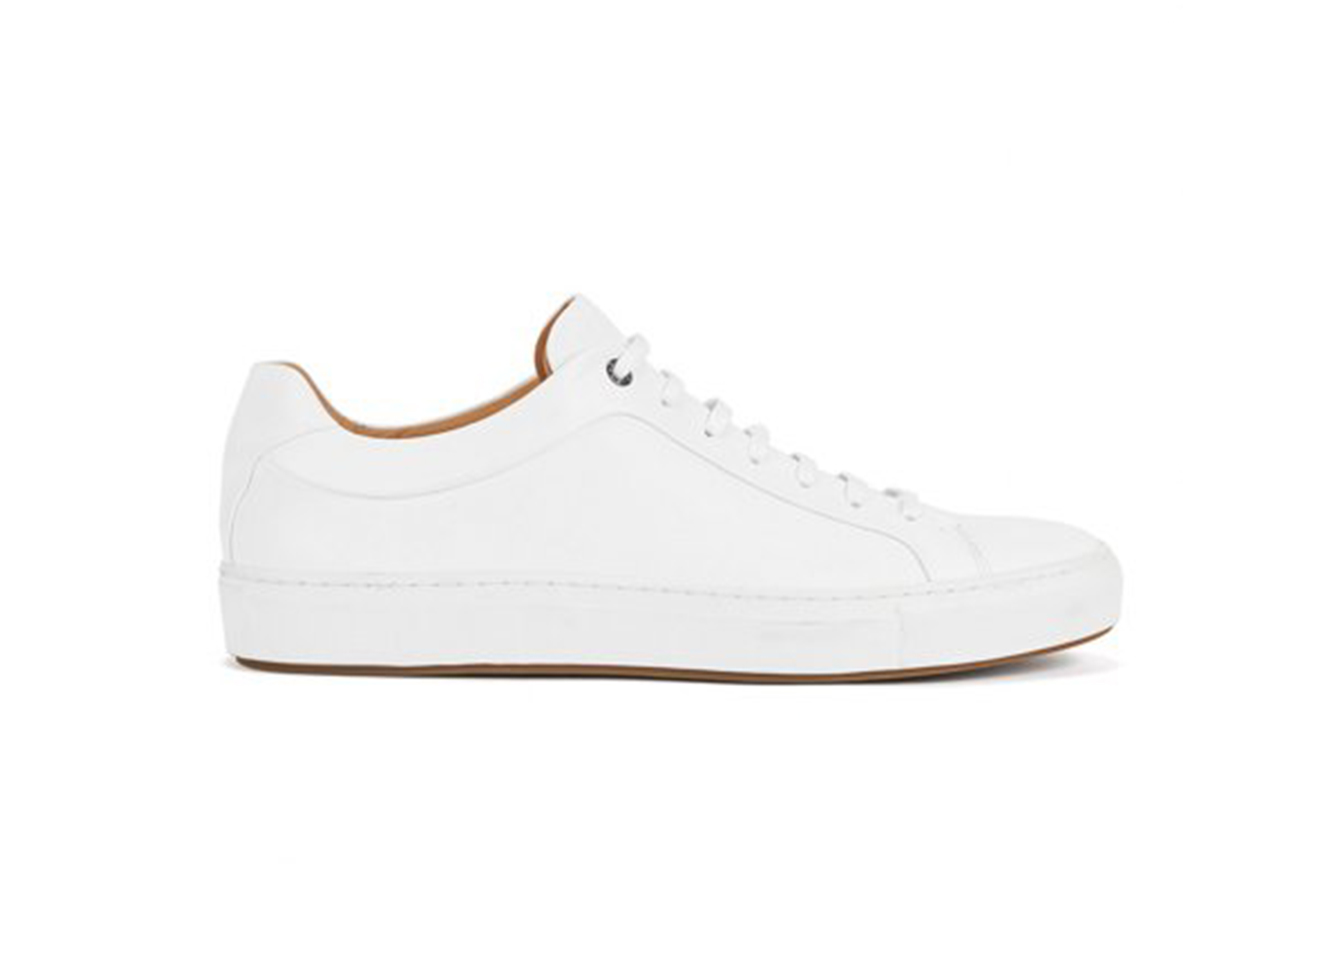 Hugo Boss white sneaker